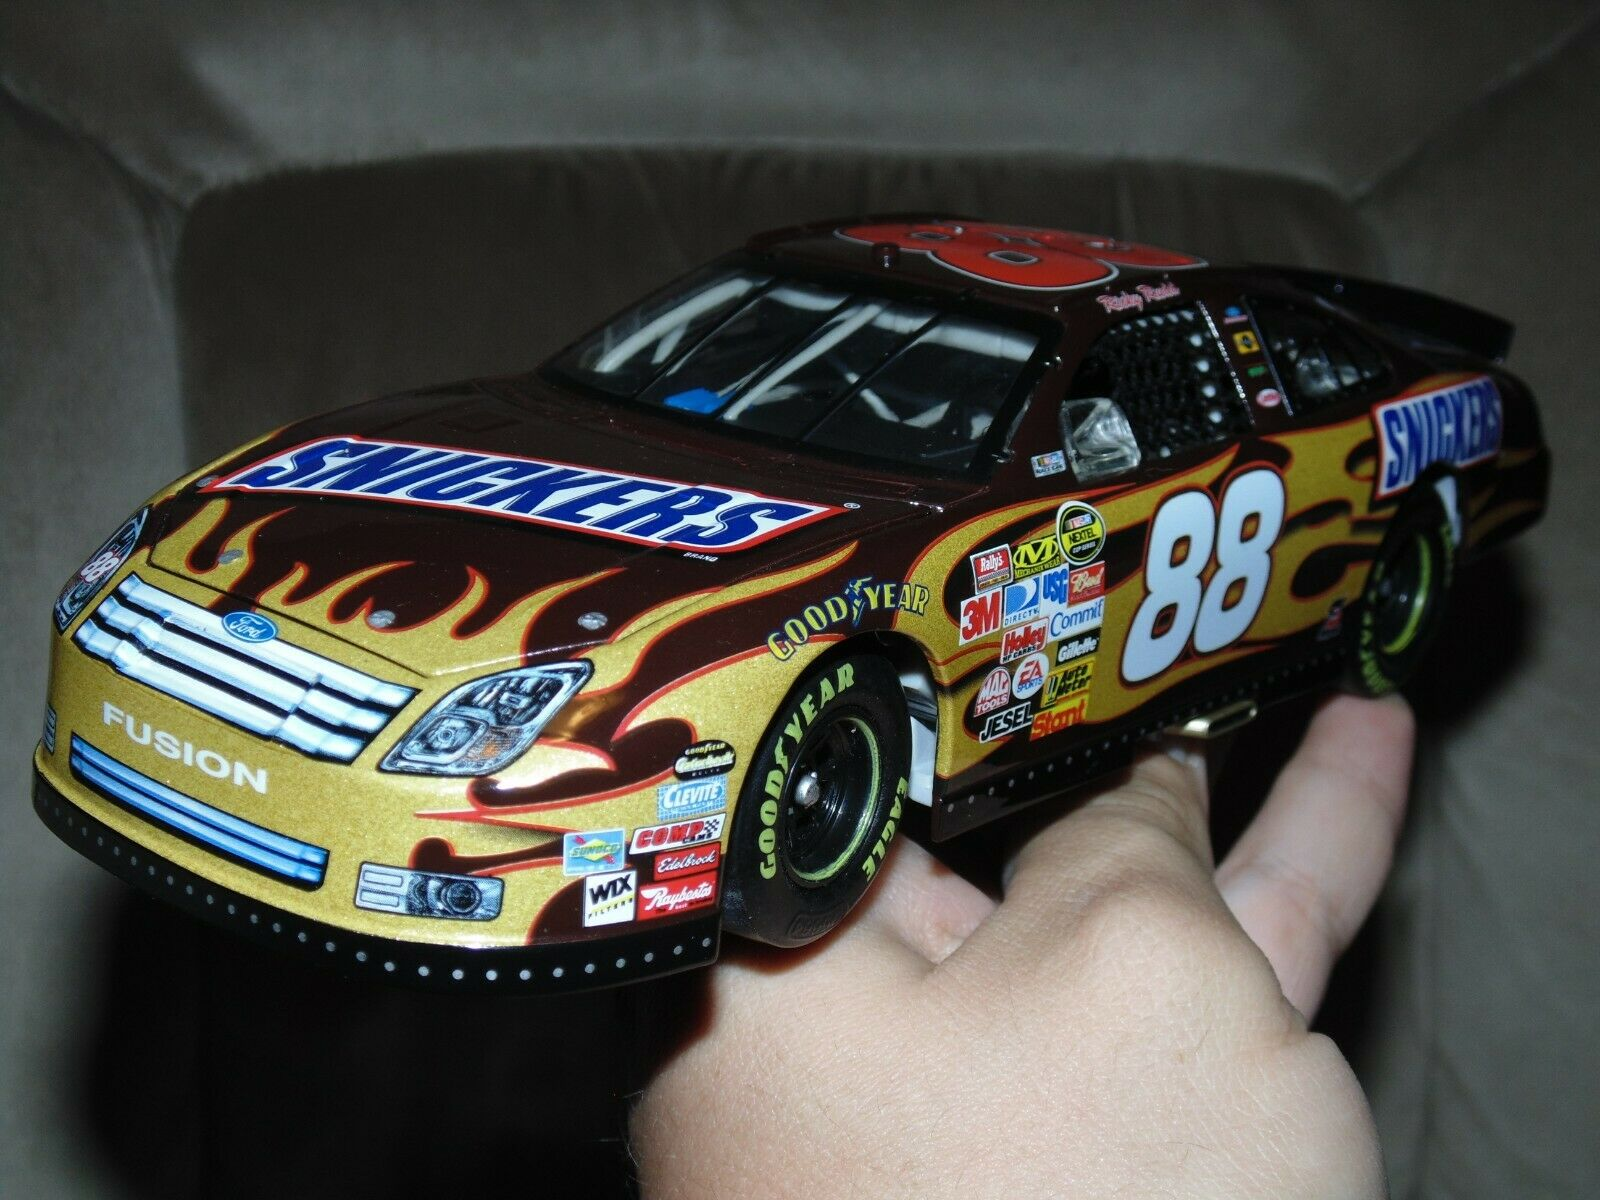 Acción Ricky Rudd Snickers Platino 1 24 2007 Ford Fusion